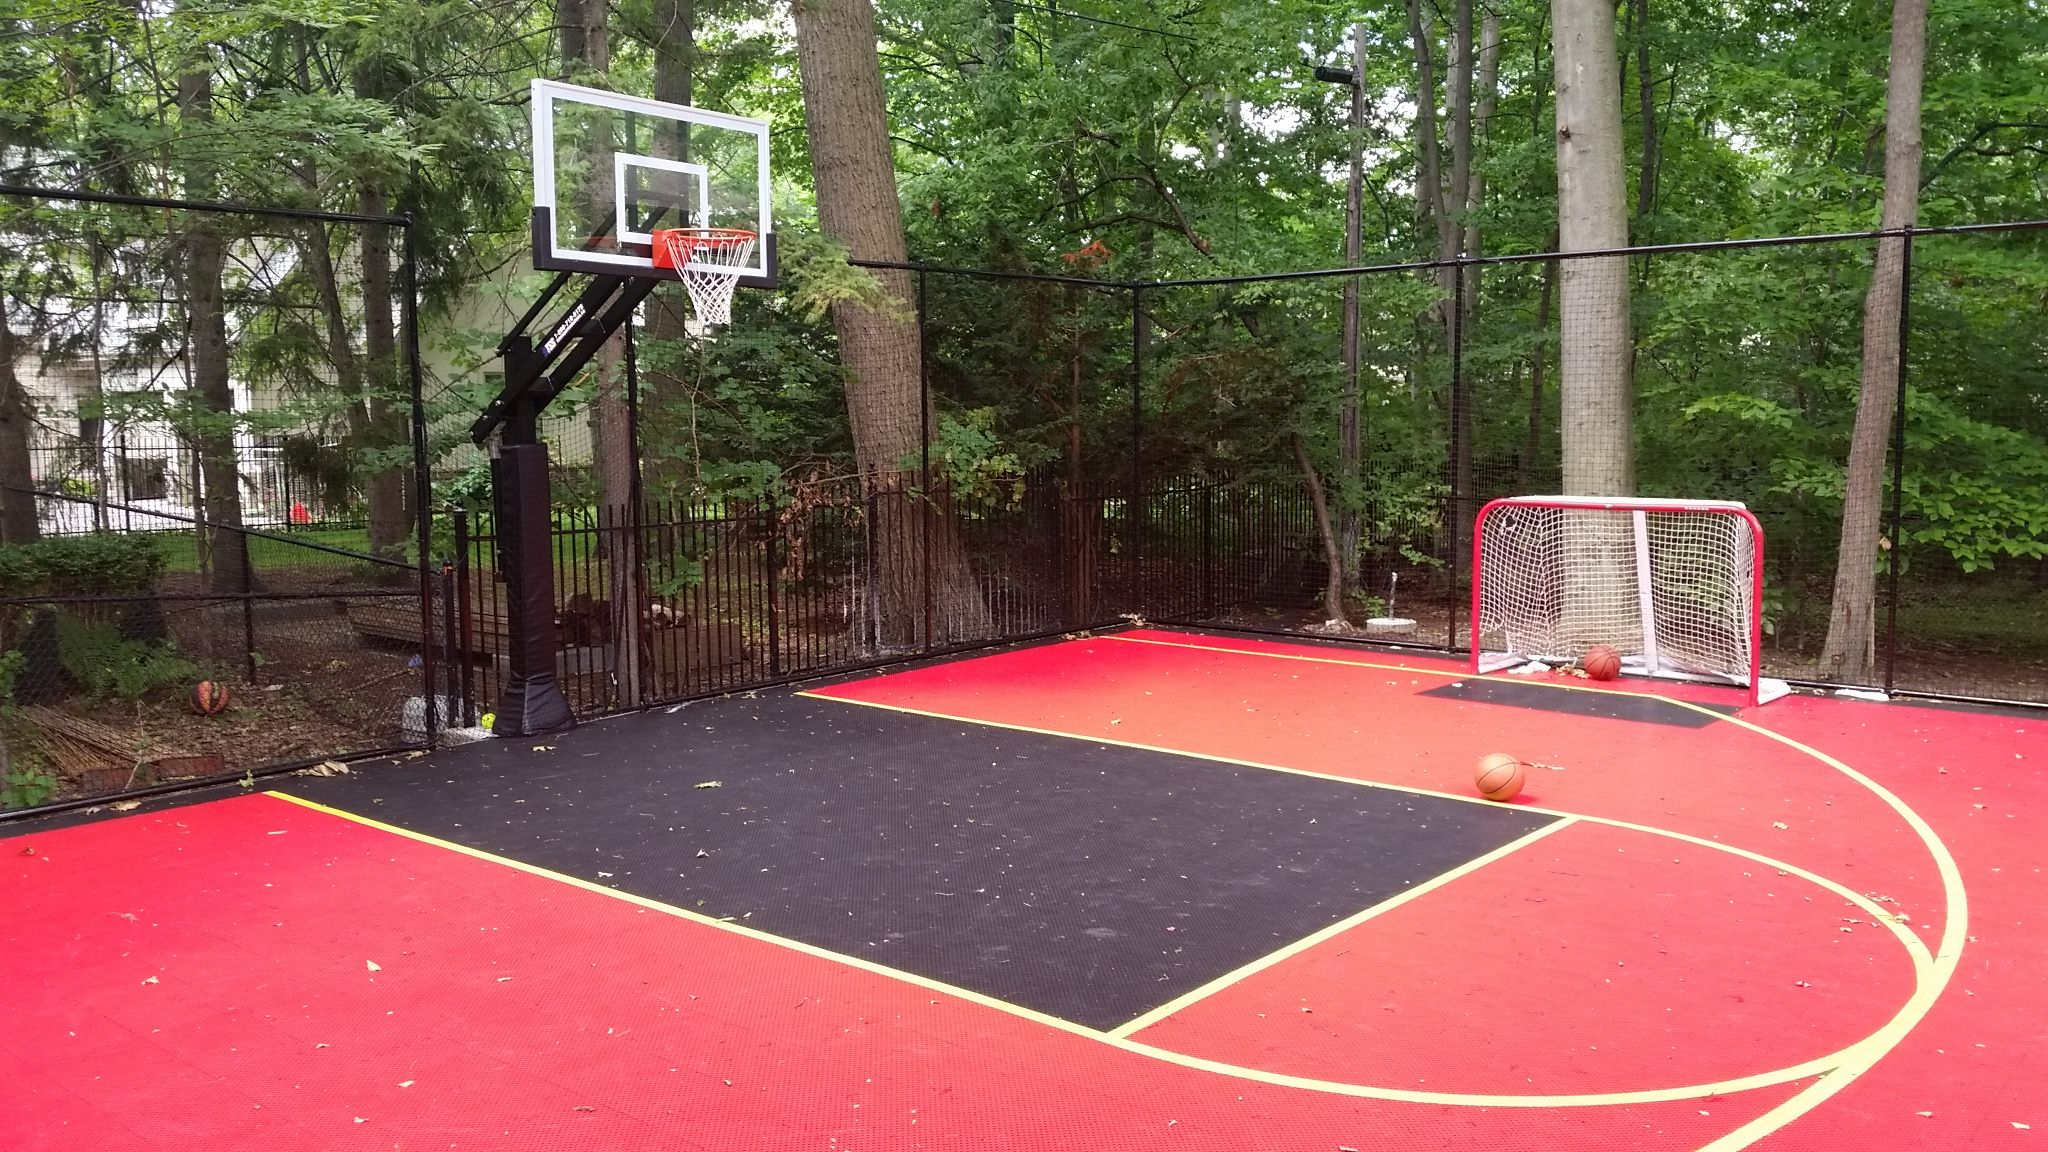 30x40 Basketball Hockey Court Duracourt By Snapsports Installed On A Concrete Pad Healthy Snacks For Kids